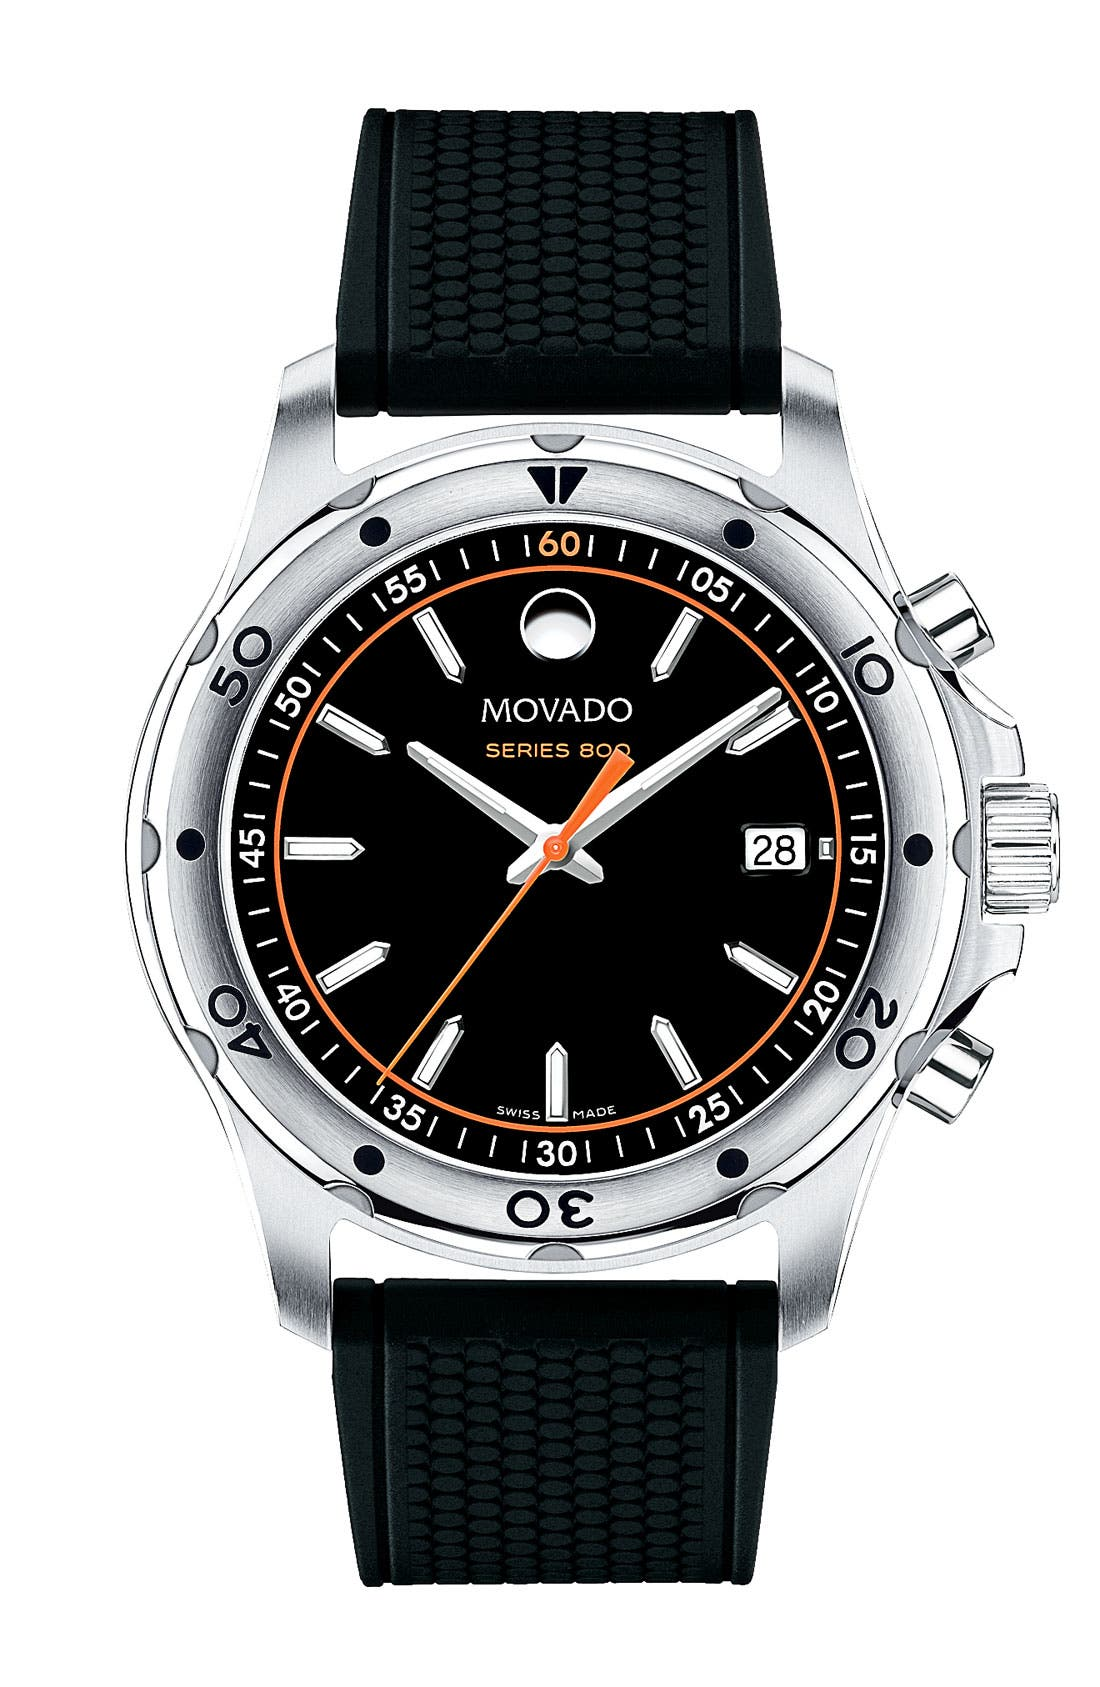 Main Image - Movado 'Series 800' Rubber Strap Watch